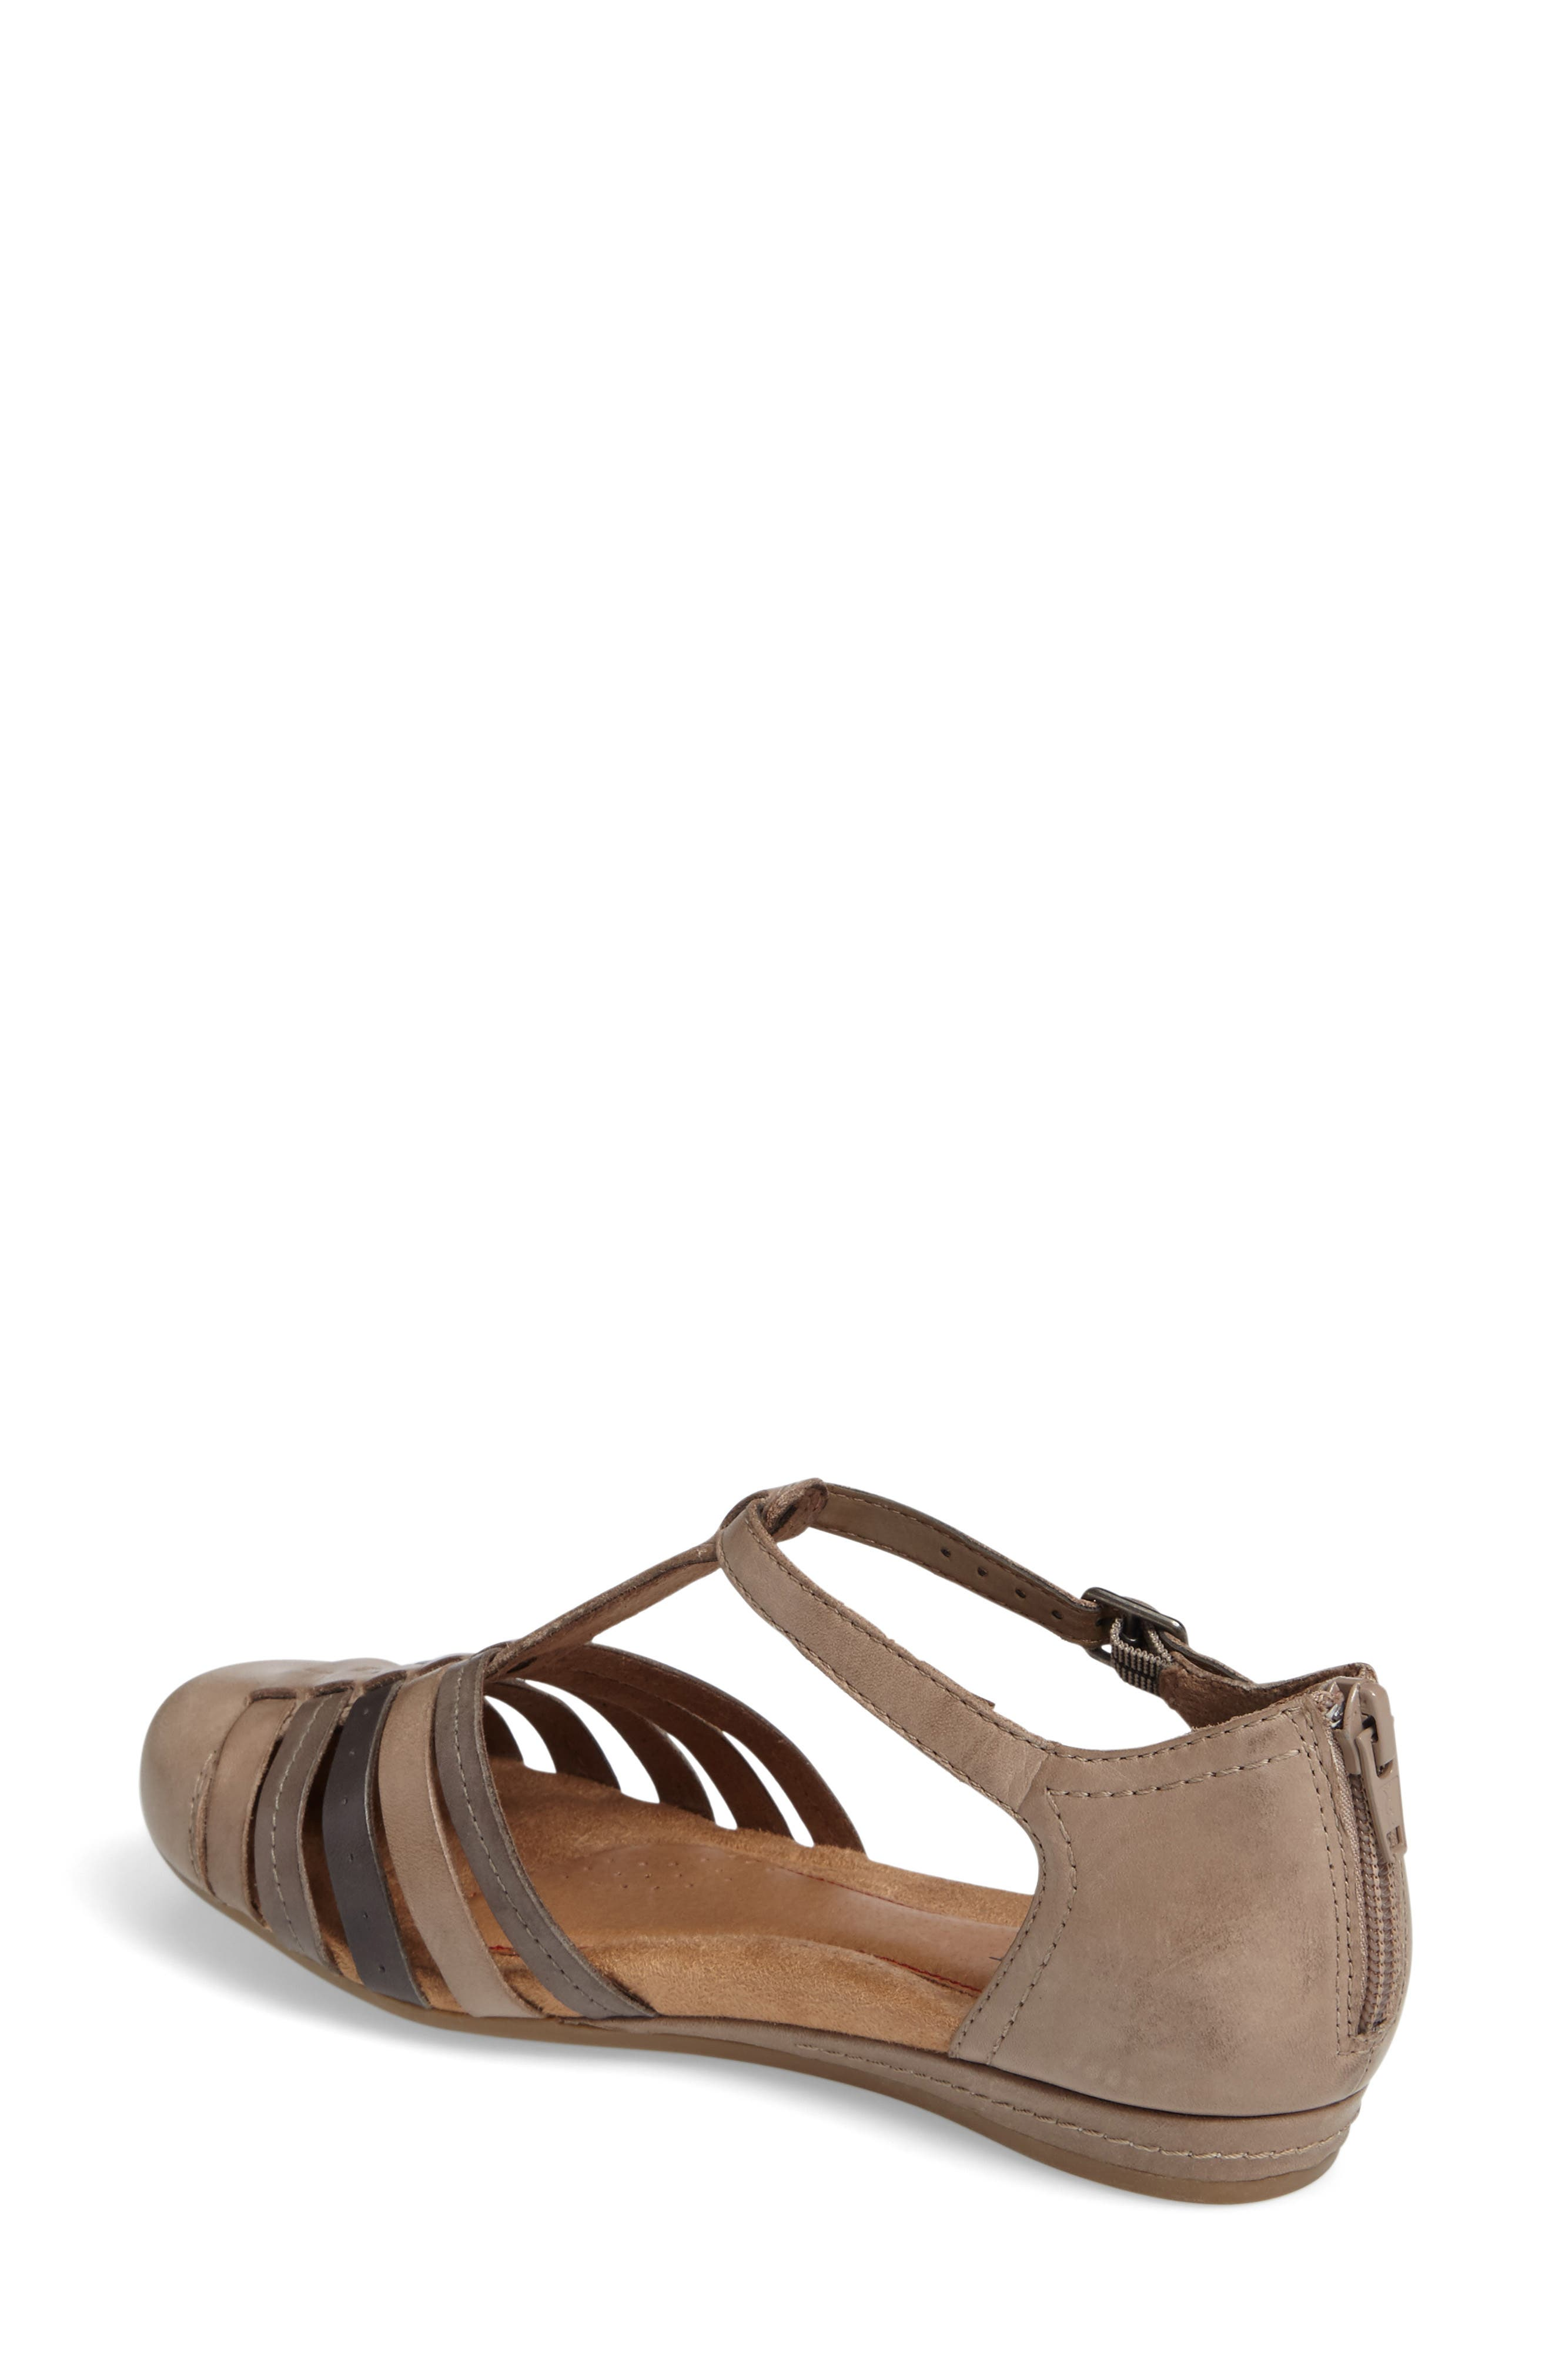 Galway T-Strap Sandal,                             Alternate thumbnail 9, color,